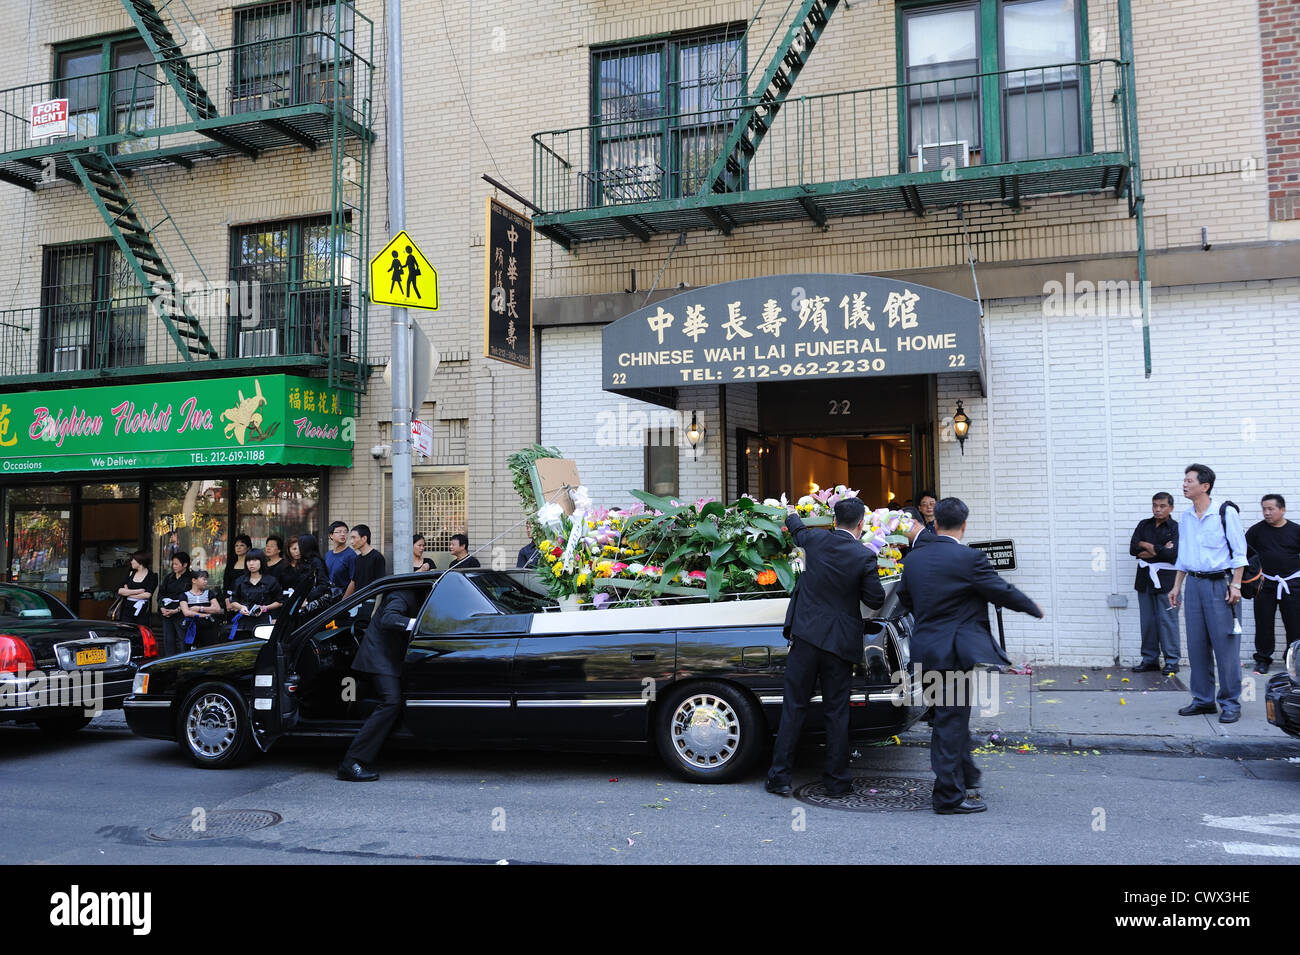 Hearse and flowers stock photos hearse and flowers stock images a funeral in manhattans chinatown with a hearse piled with flowers aug 31 izmirmasajfo